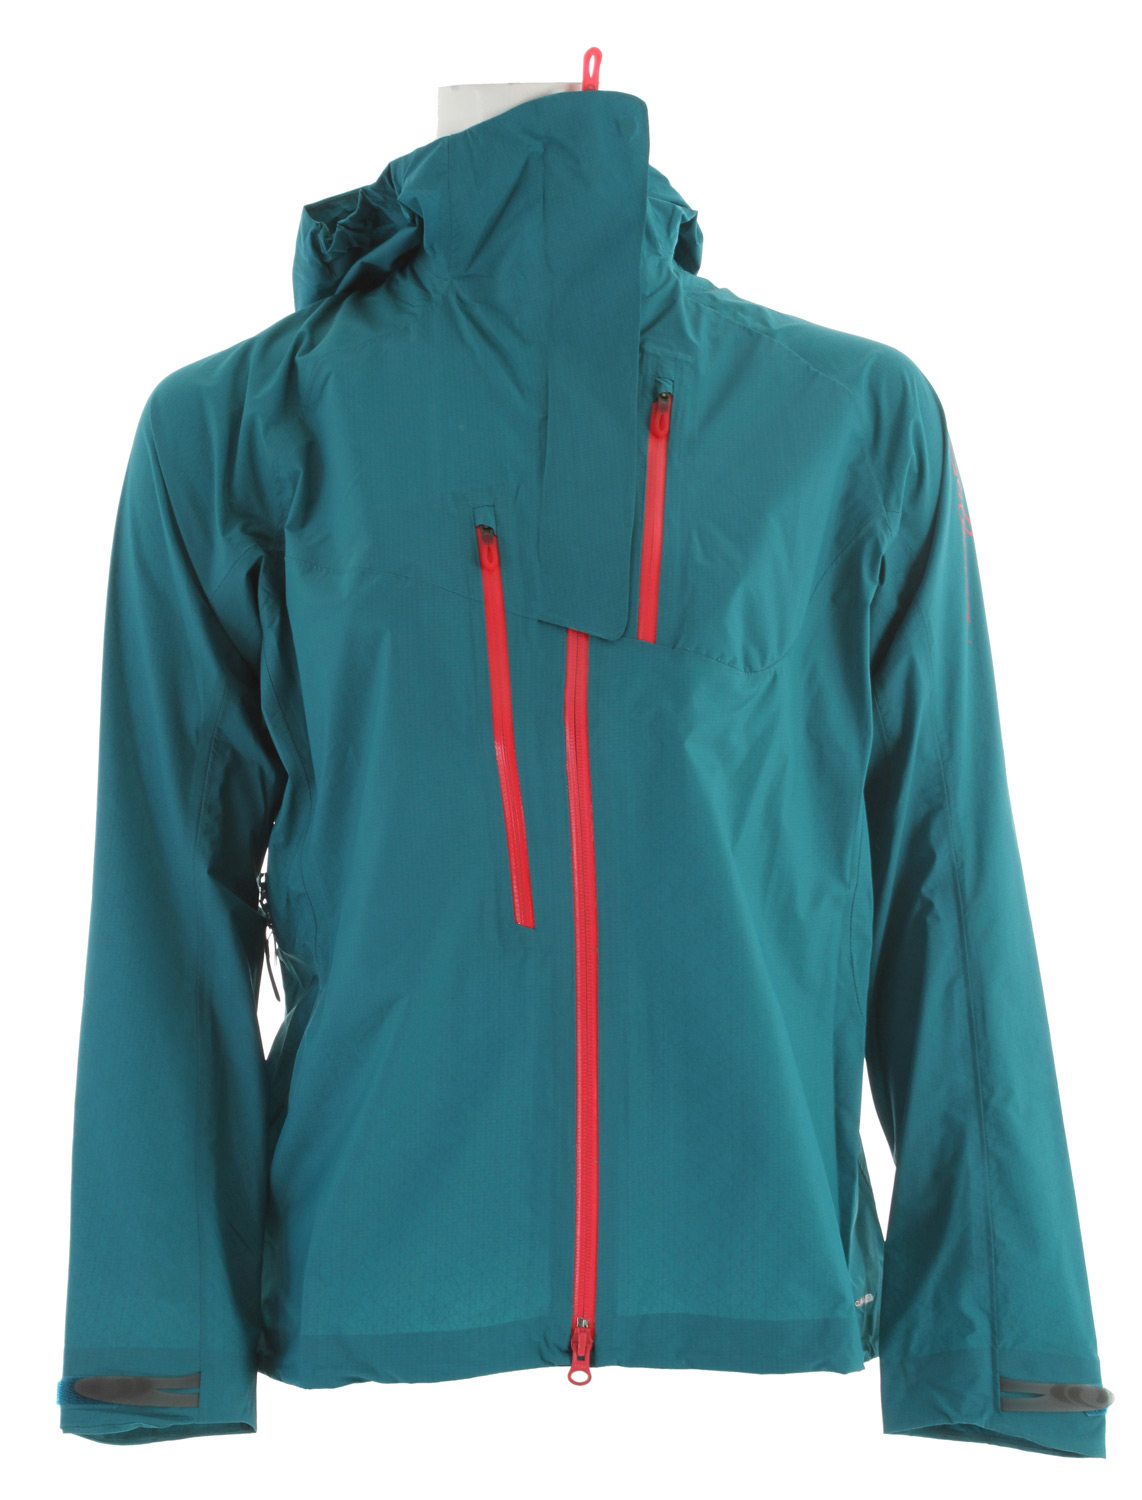 Ski Maximum weather protection, minimum weight. This ultra-packable shell includes pit zips and a large collar for comfort and protection.Key Features of the Salomon Minim Shell Ski Jacket: 2 Chest Pockets Air Vent System Emergency Hood climaPRO SB Ripstop 2.5L ACTIVE FIT - $76.46